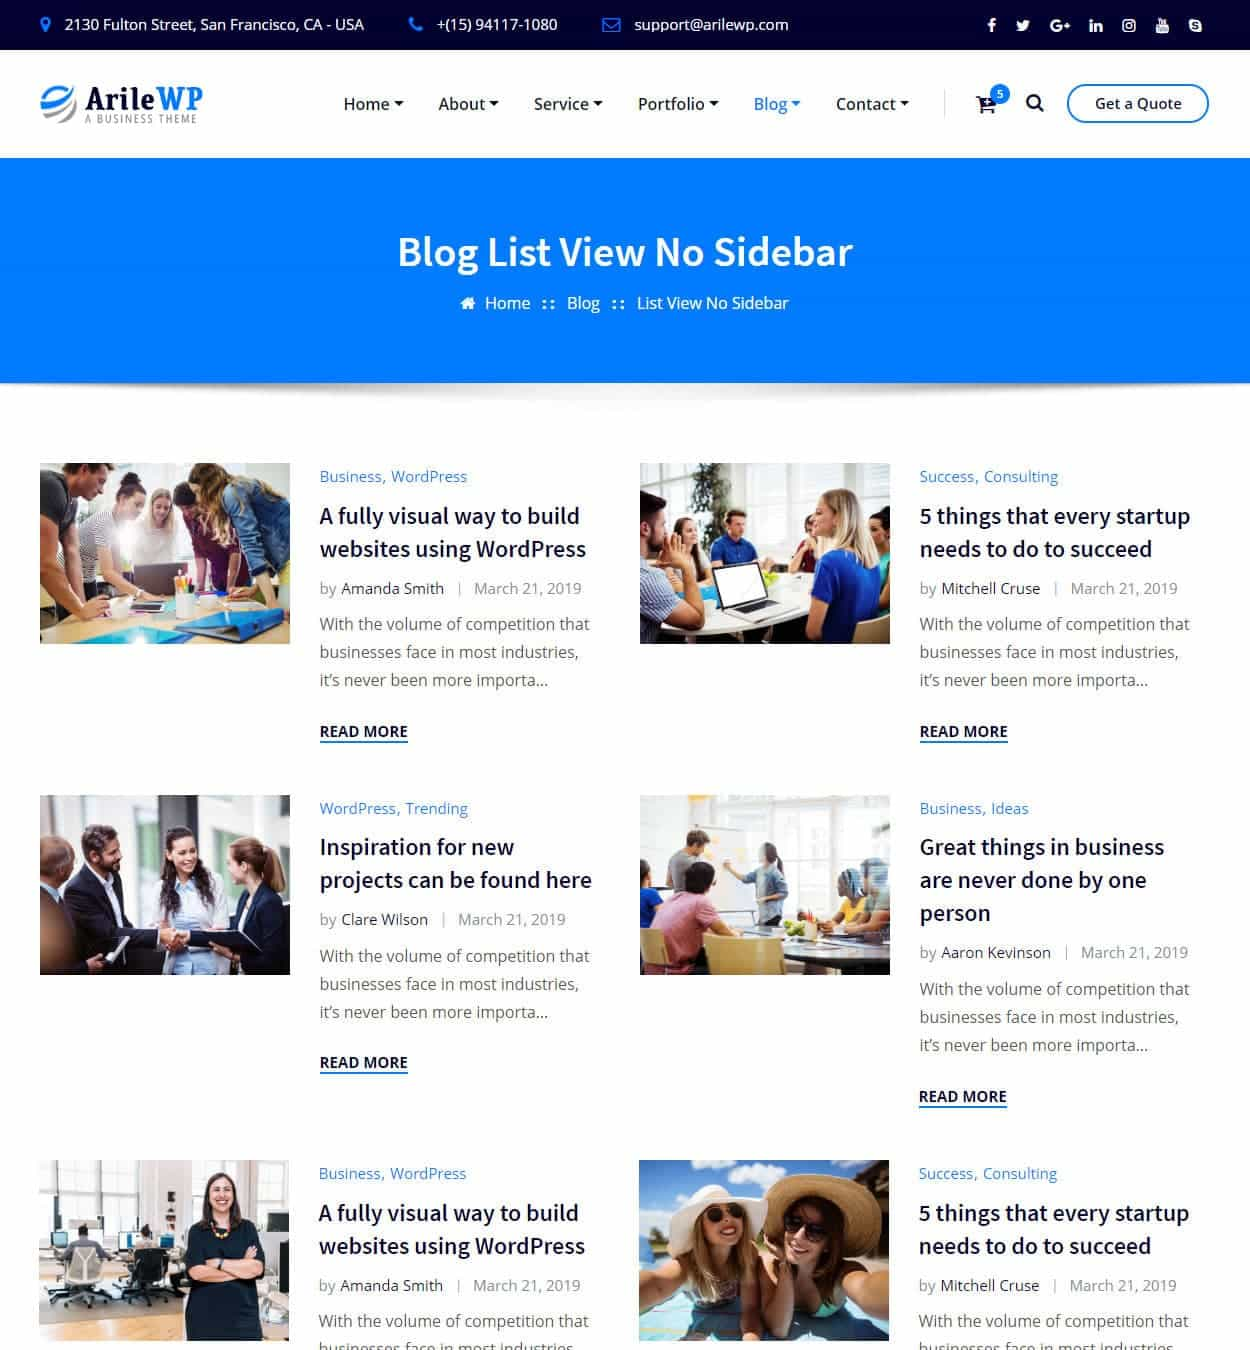 Blog List View No/Sidebar